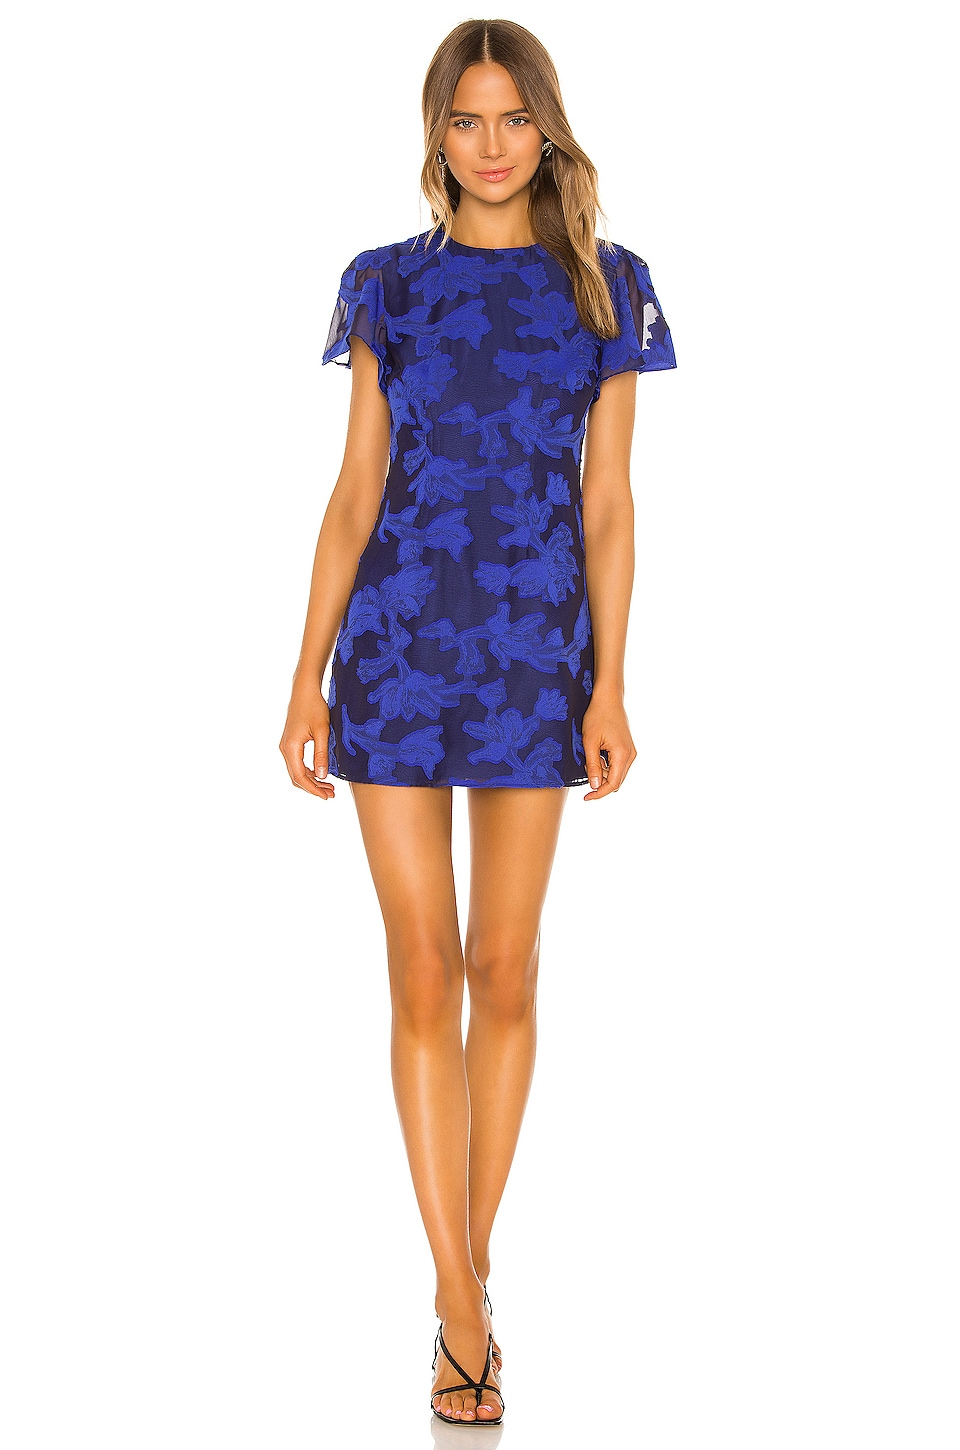 House of Harlow 1960 x REVOLVE Lotte Dress in Cobalt